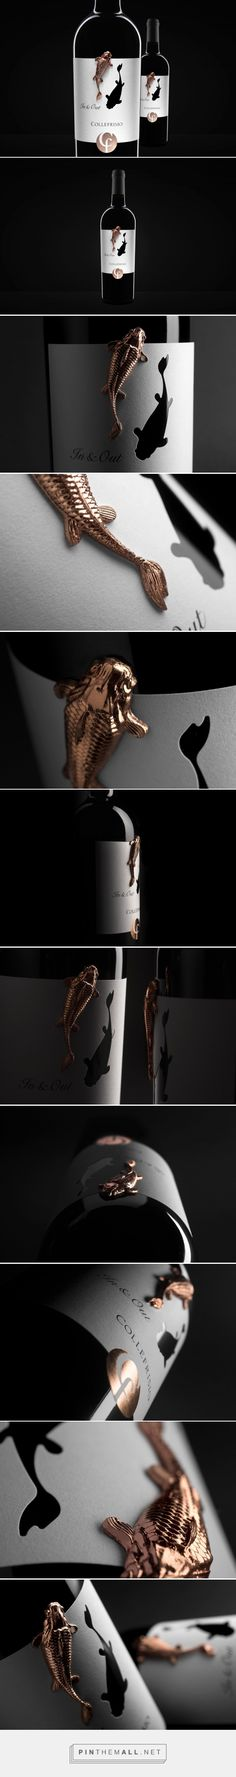 Packaging of the World is a package design inspiration archive showcasing the best, most interesting and creative work worldwide. Wine Packaging, Brand Packaging, Packaging Design, Wine Bottle Design, Wine Label Design, Different Types Of Wine, In Vino Veritas, Wine Bottle Crafts, Branding